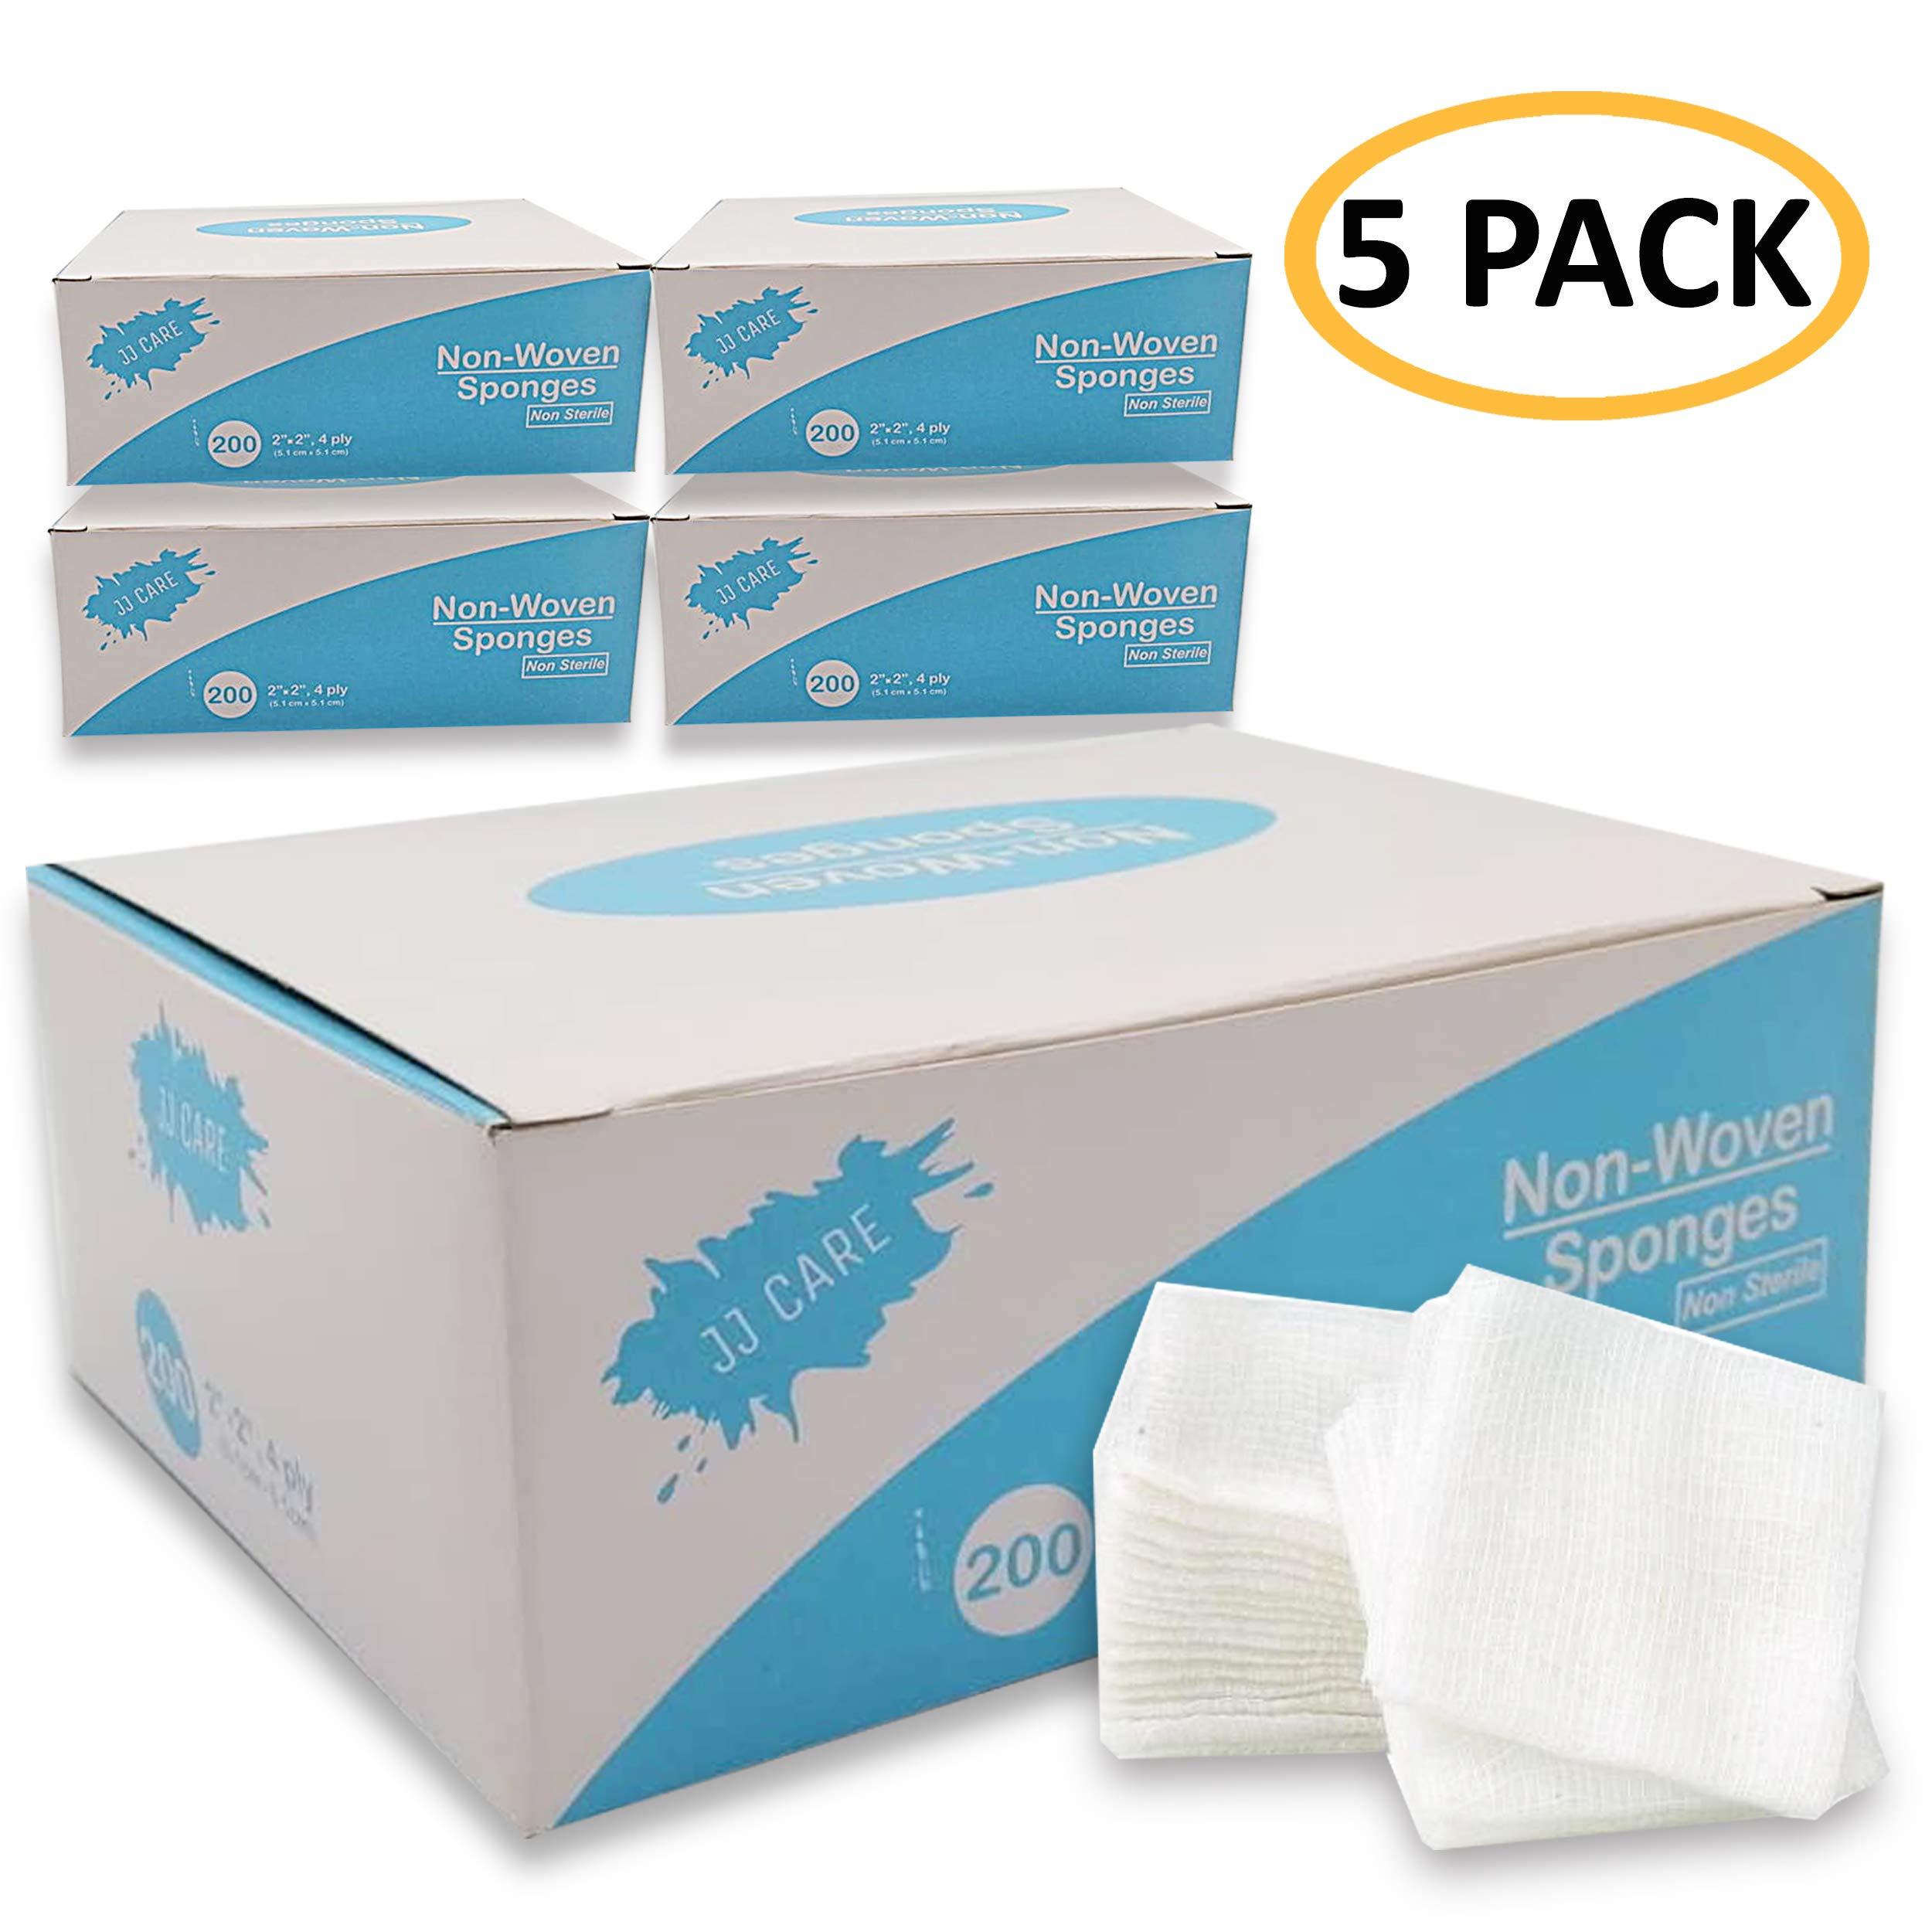 [40% Thicker] Non Woven Gauze Sponge 2x2 inches, 4-Ply Non-sterile, Medical, Dental, Facial Wipes - Esthetic Supplies, Spa Essentials Pads - 200 Count per Box (Pack of 5) by JJ CARE